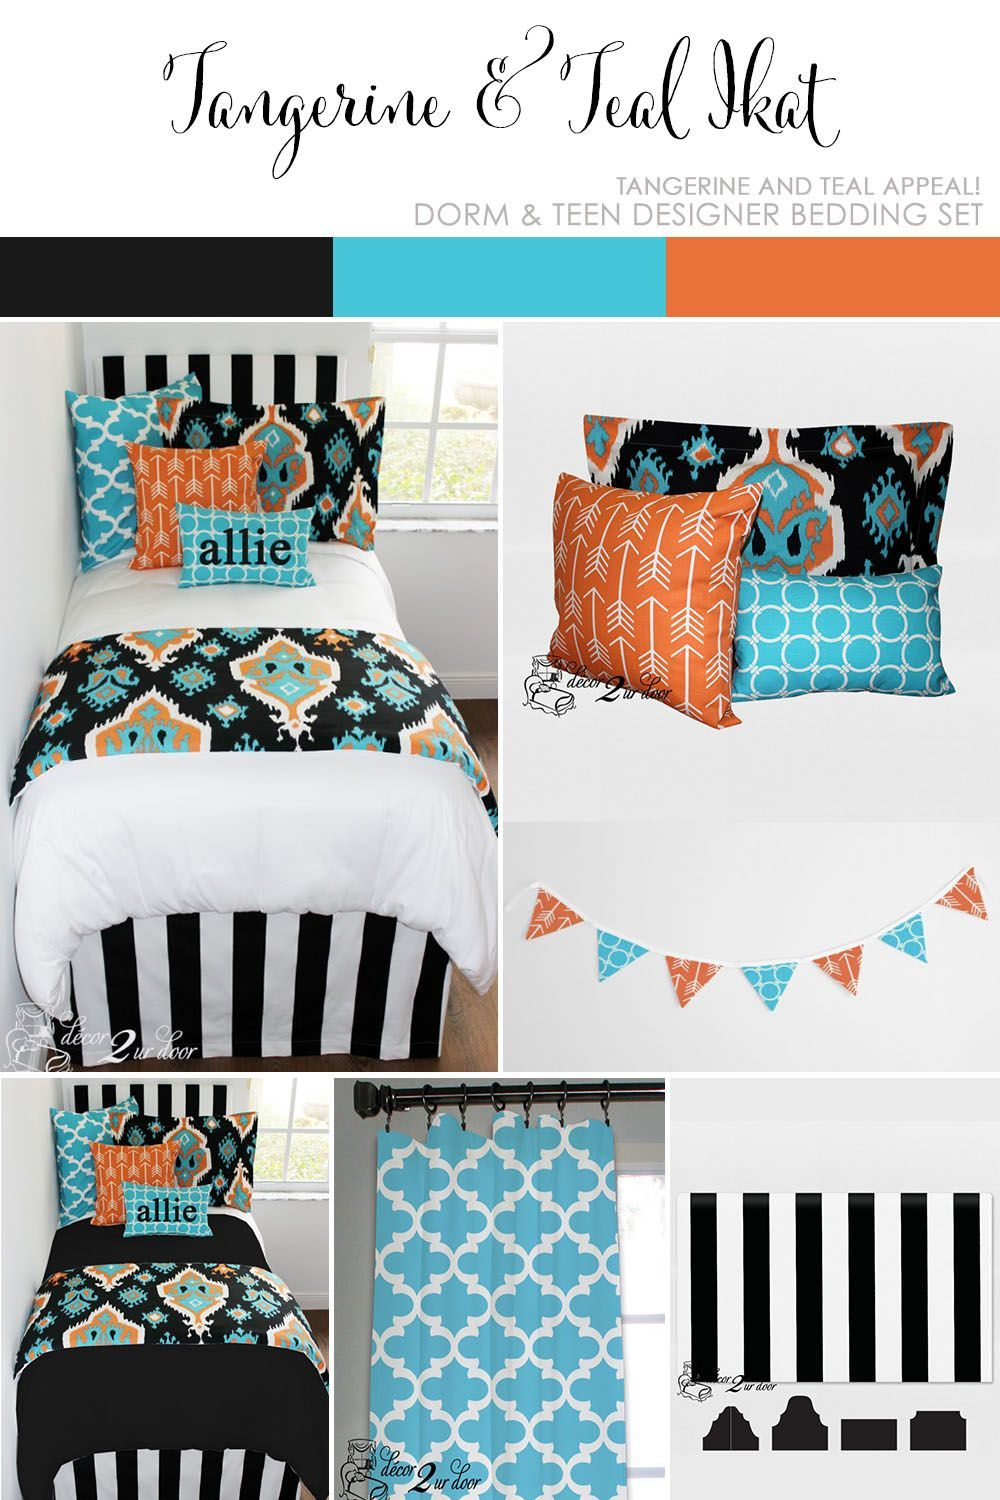 Design Your Own Dorm Room: Decorate A Dorm Room. Dorm Room Bedding And Décor. Dorm